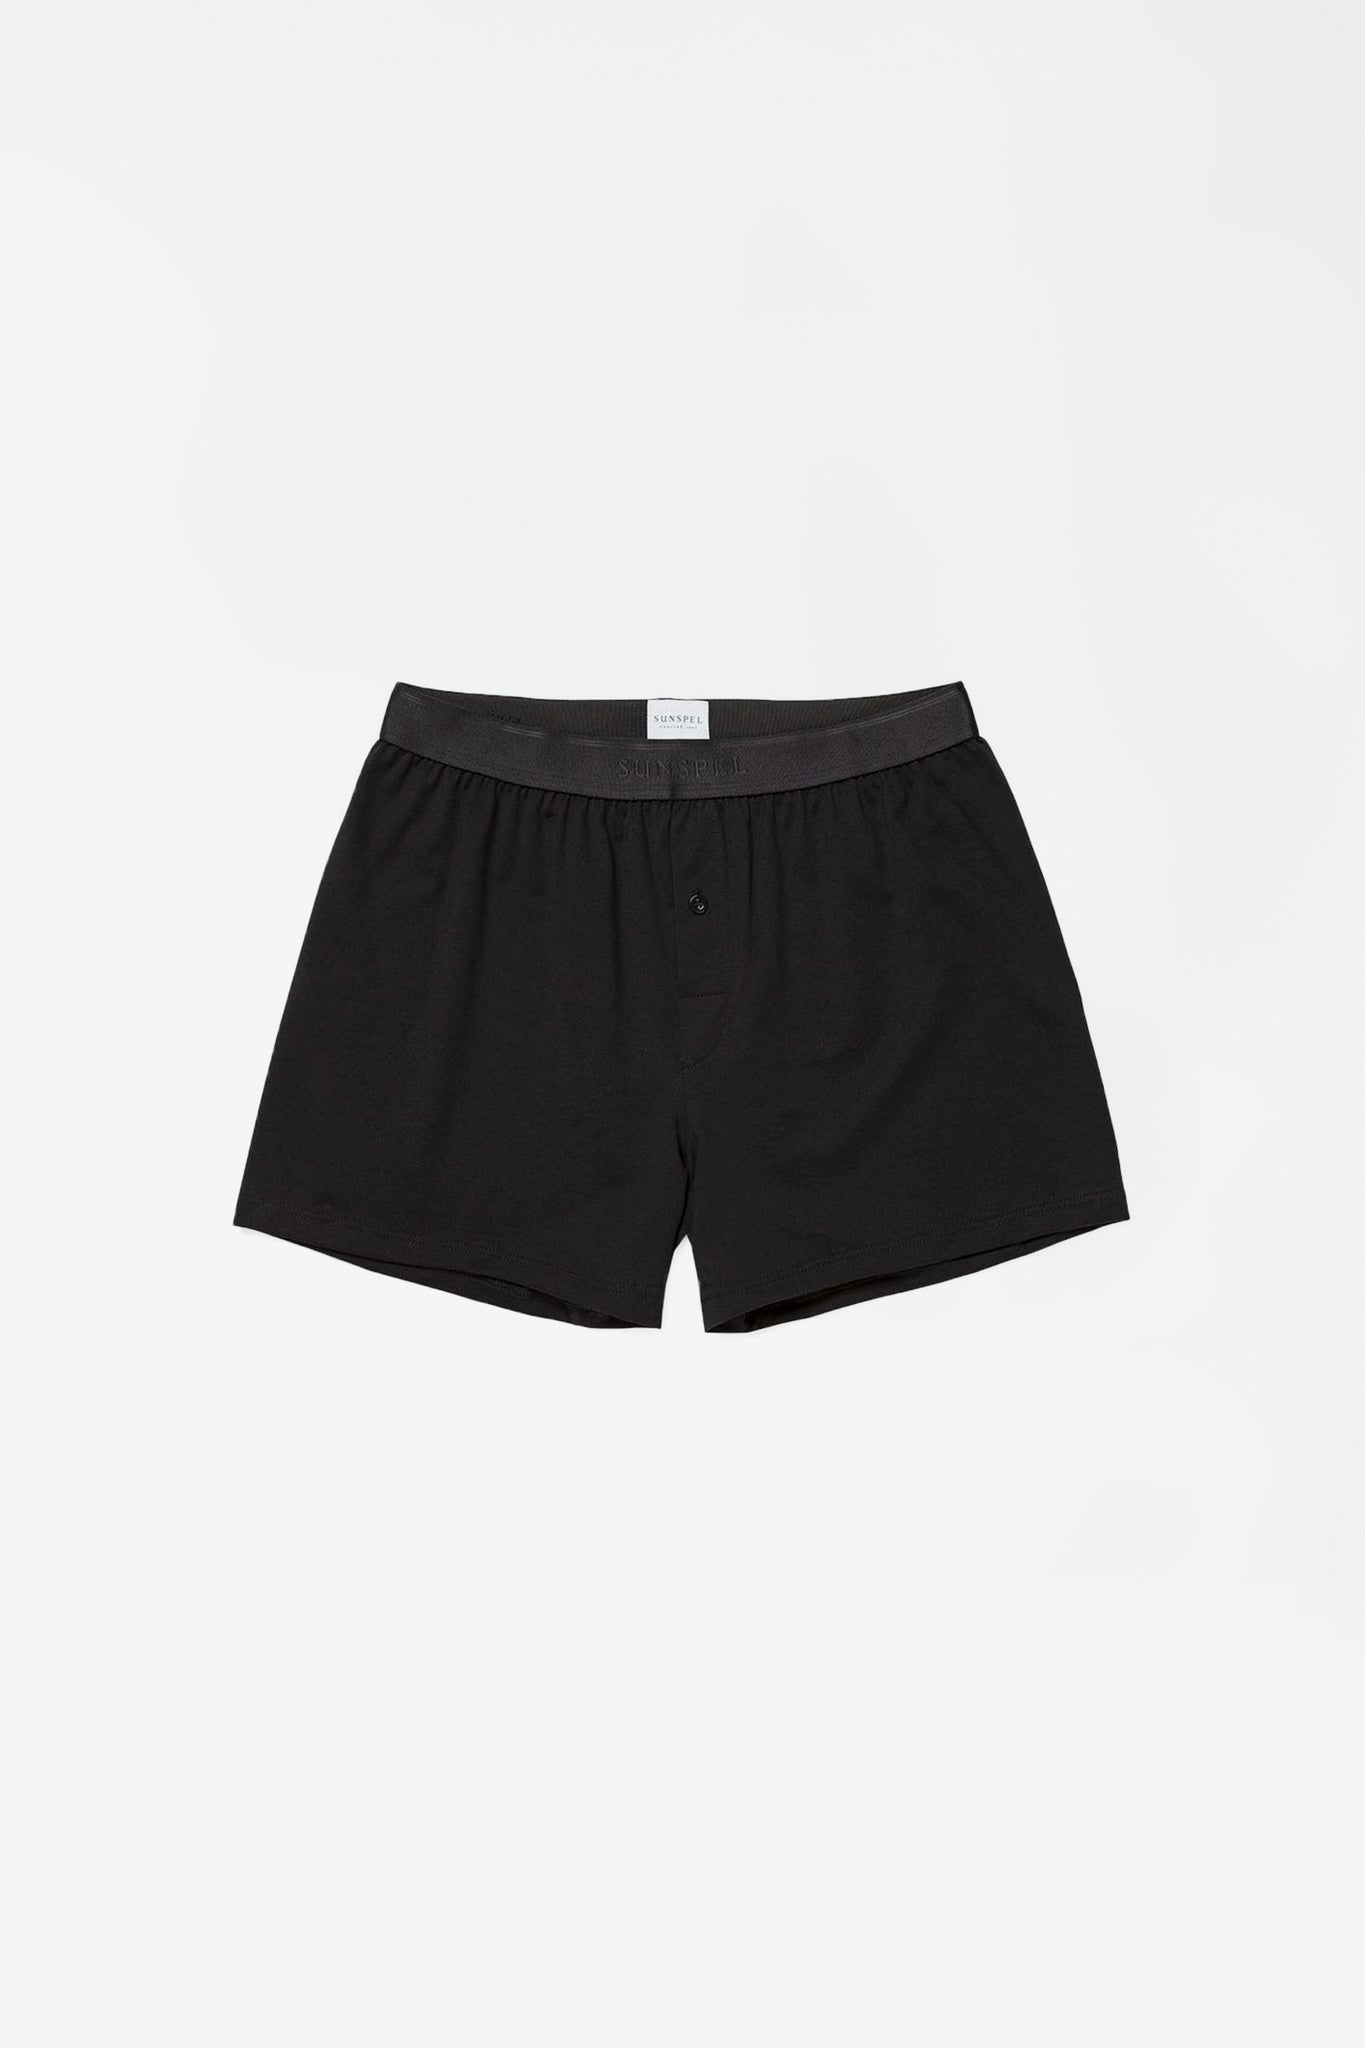 Superfine cotton 1 button short black